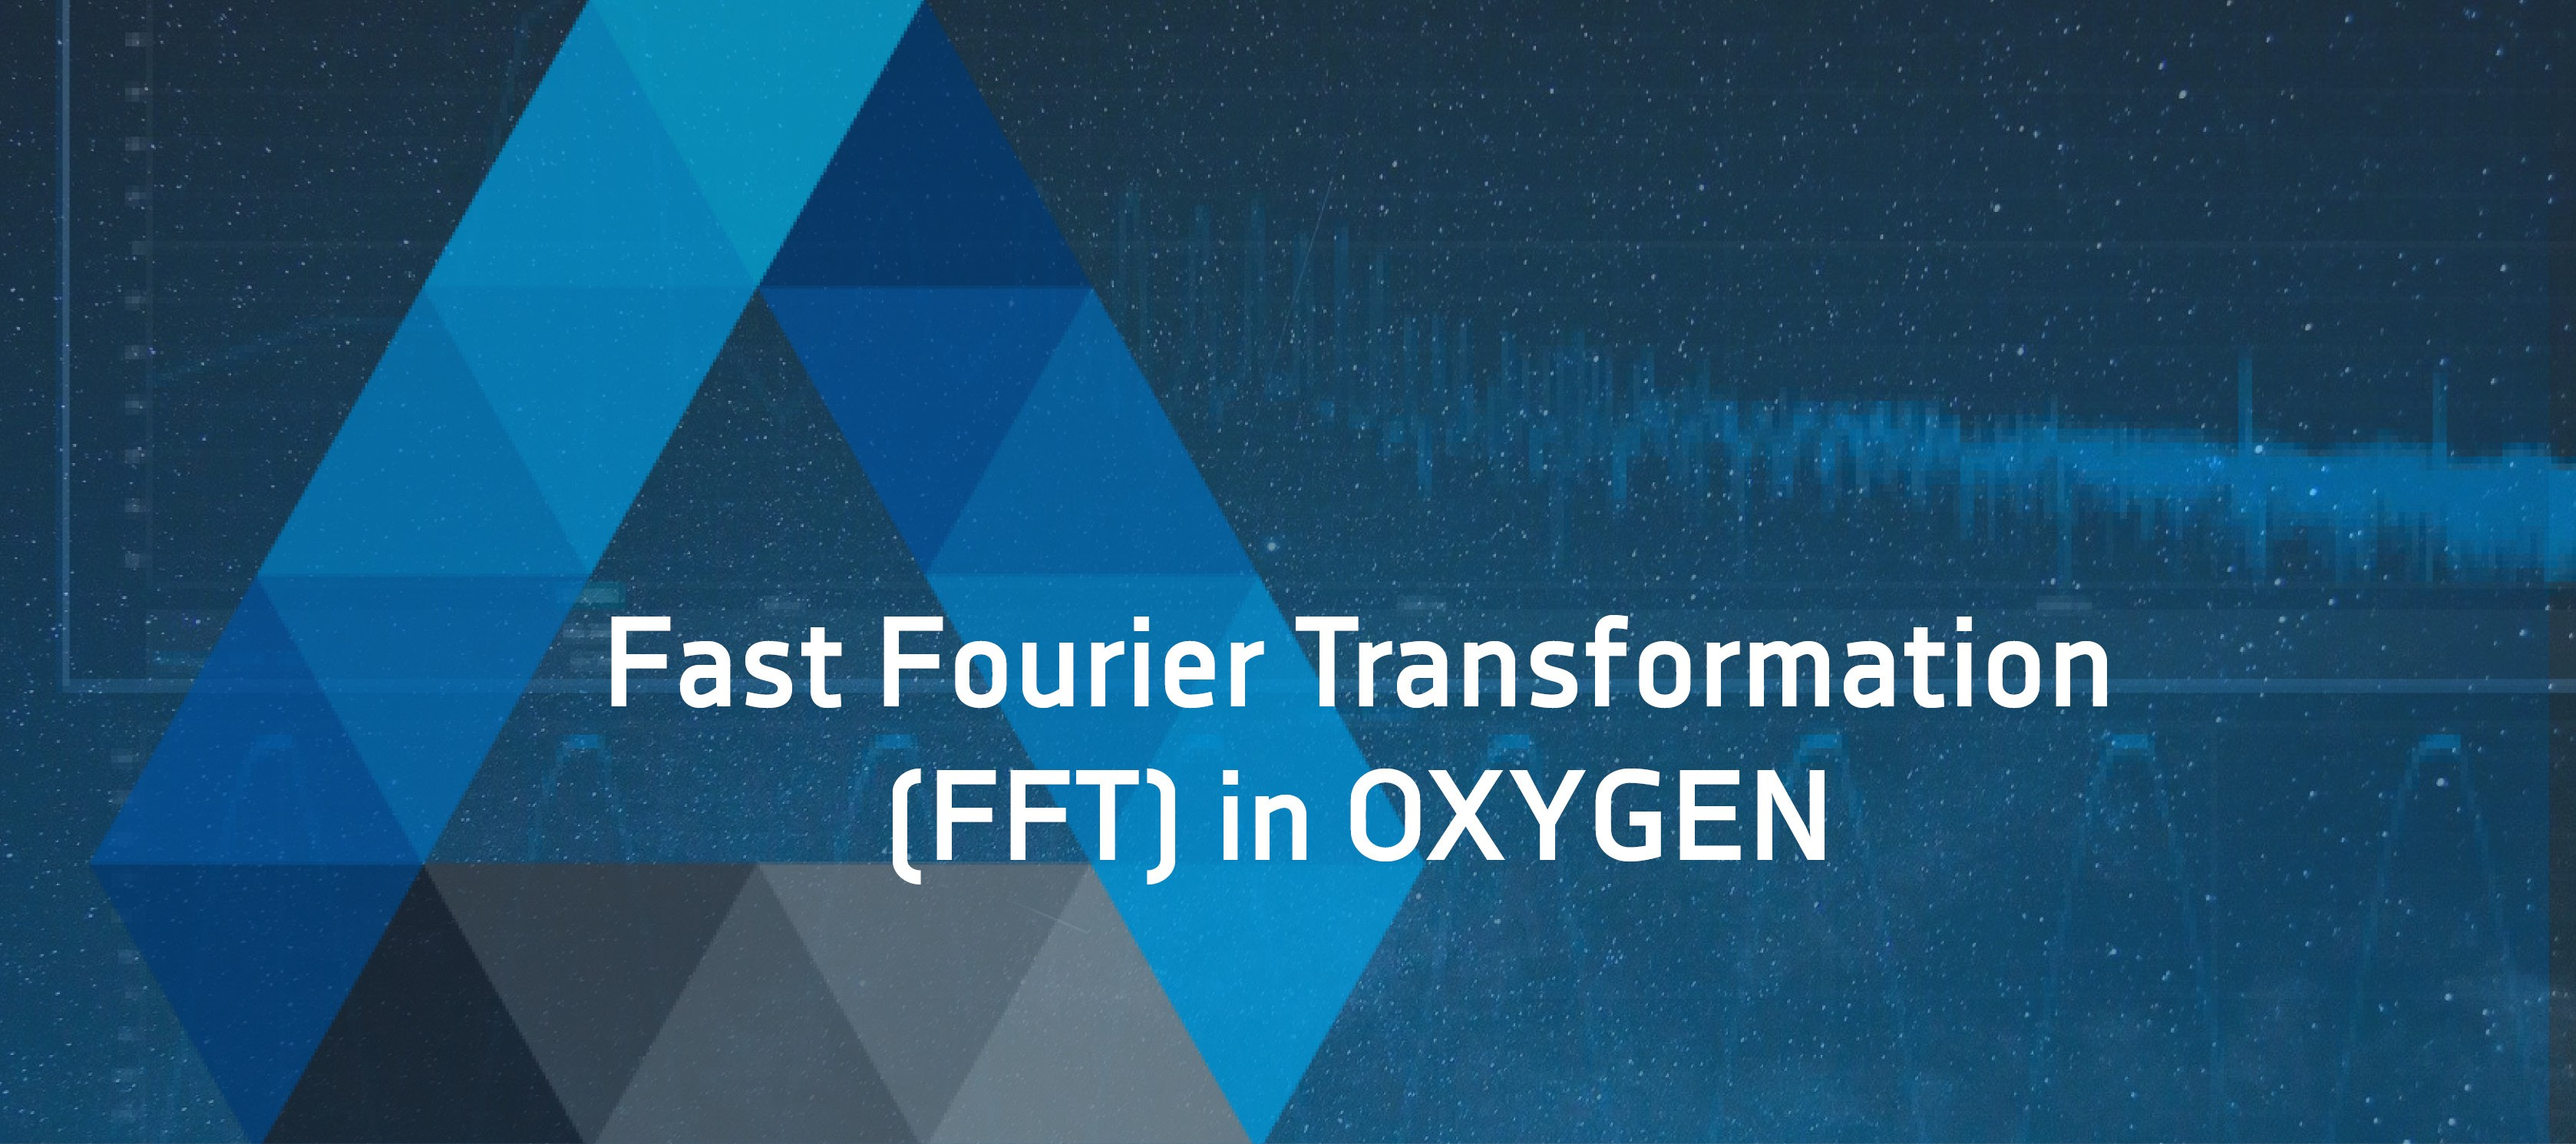 Fast Fourier Transformation (FFT) Intro